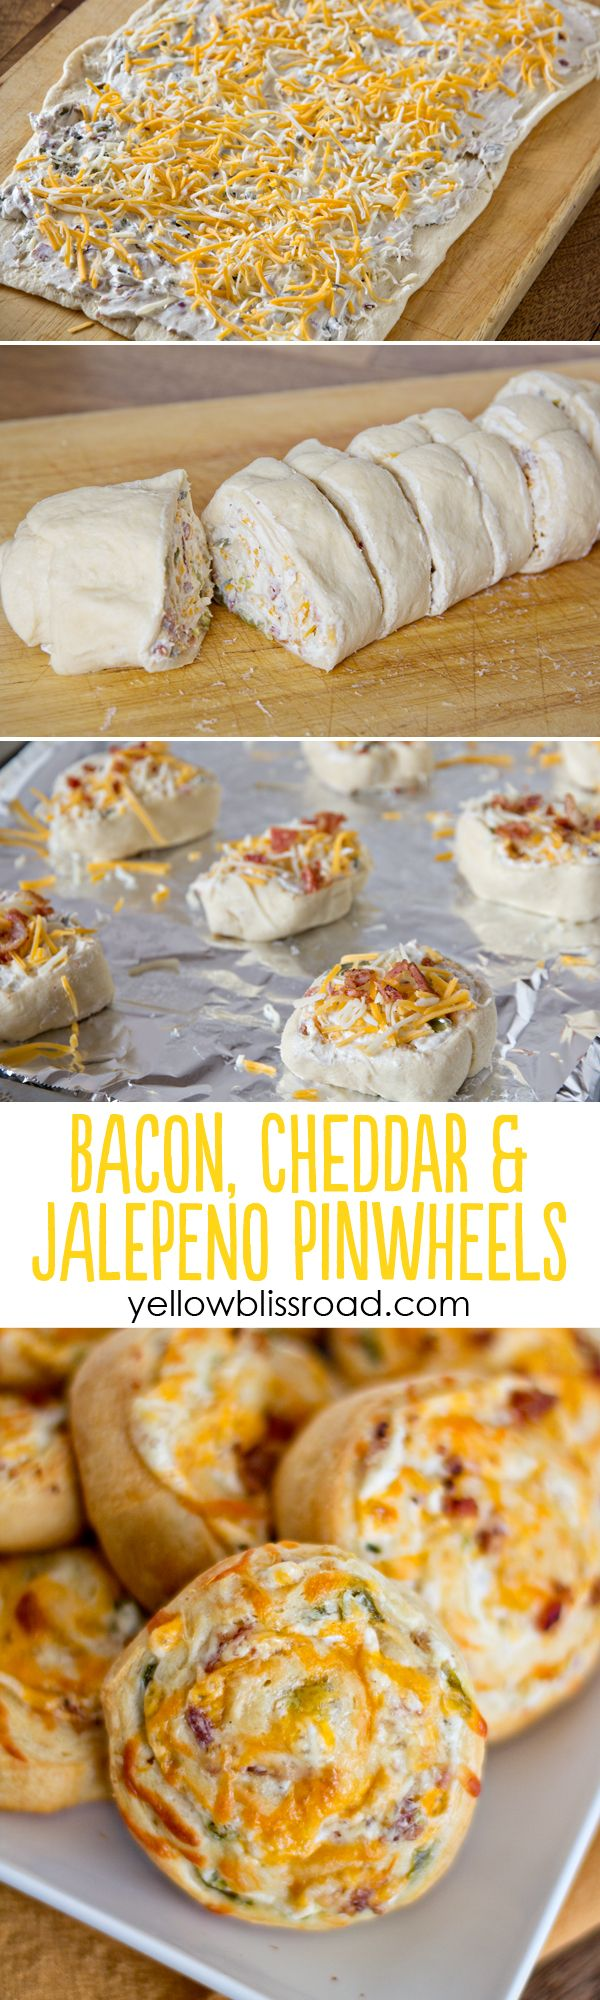 Bacon, Cheddar & Jalapeño Pinwheels.. makes me think of bacon wrapped jalpenos